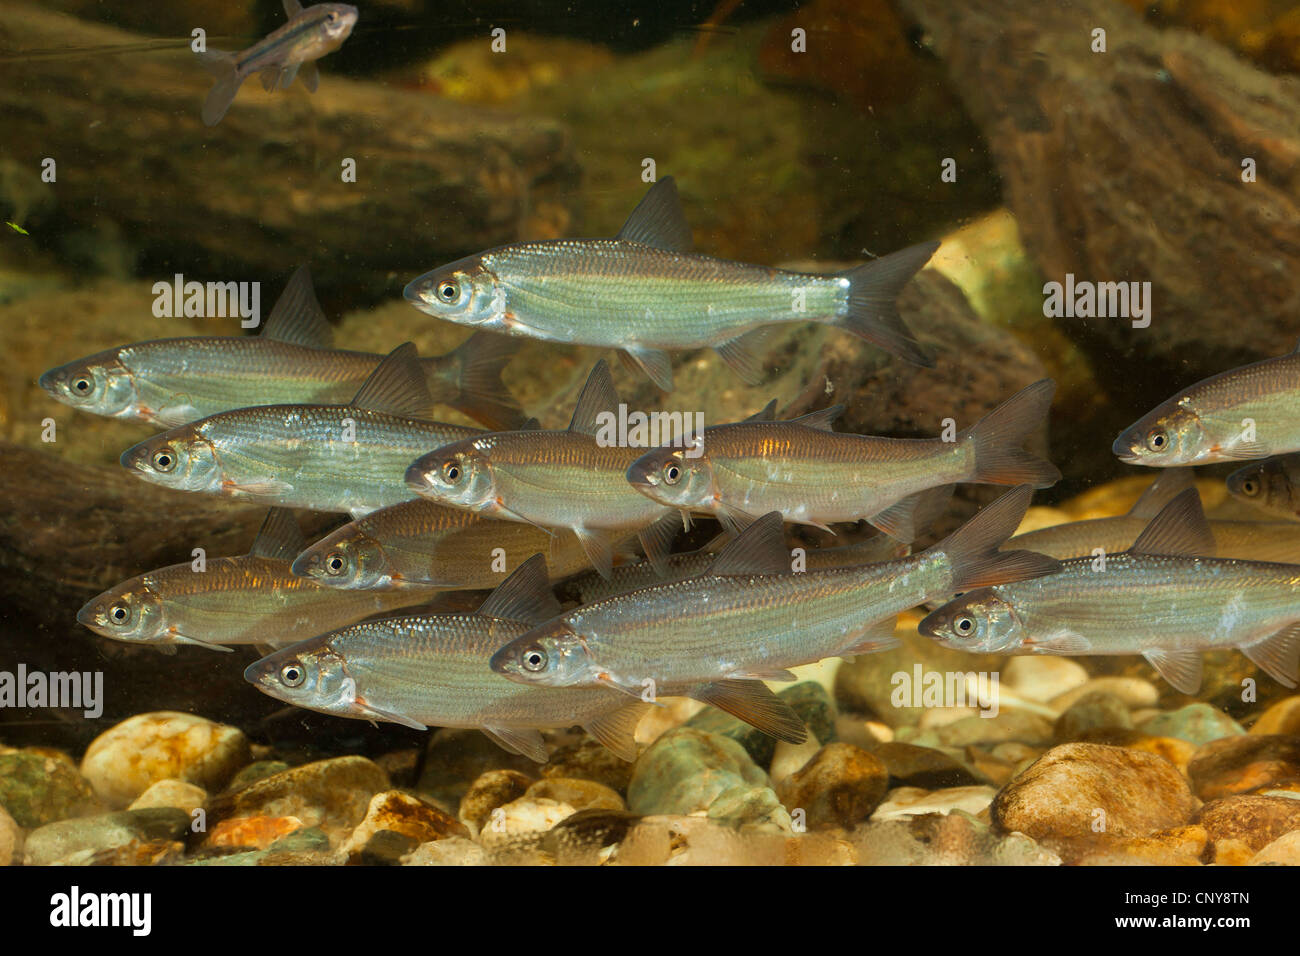 nase (Chondrostoma nasus), shoal of 10 cm long one summer old juveniles - Stock Image